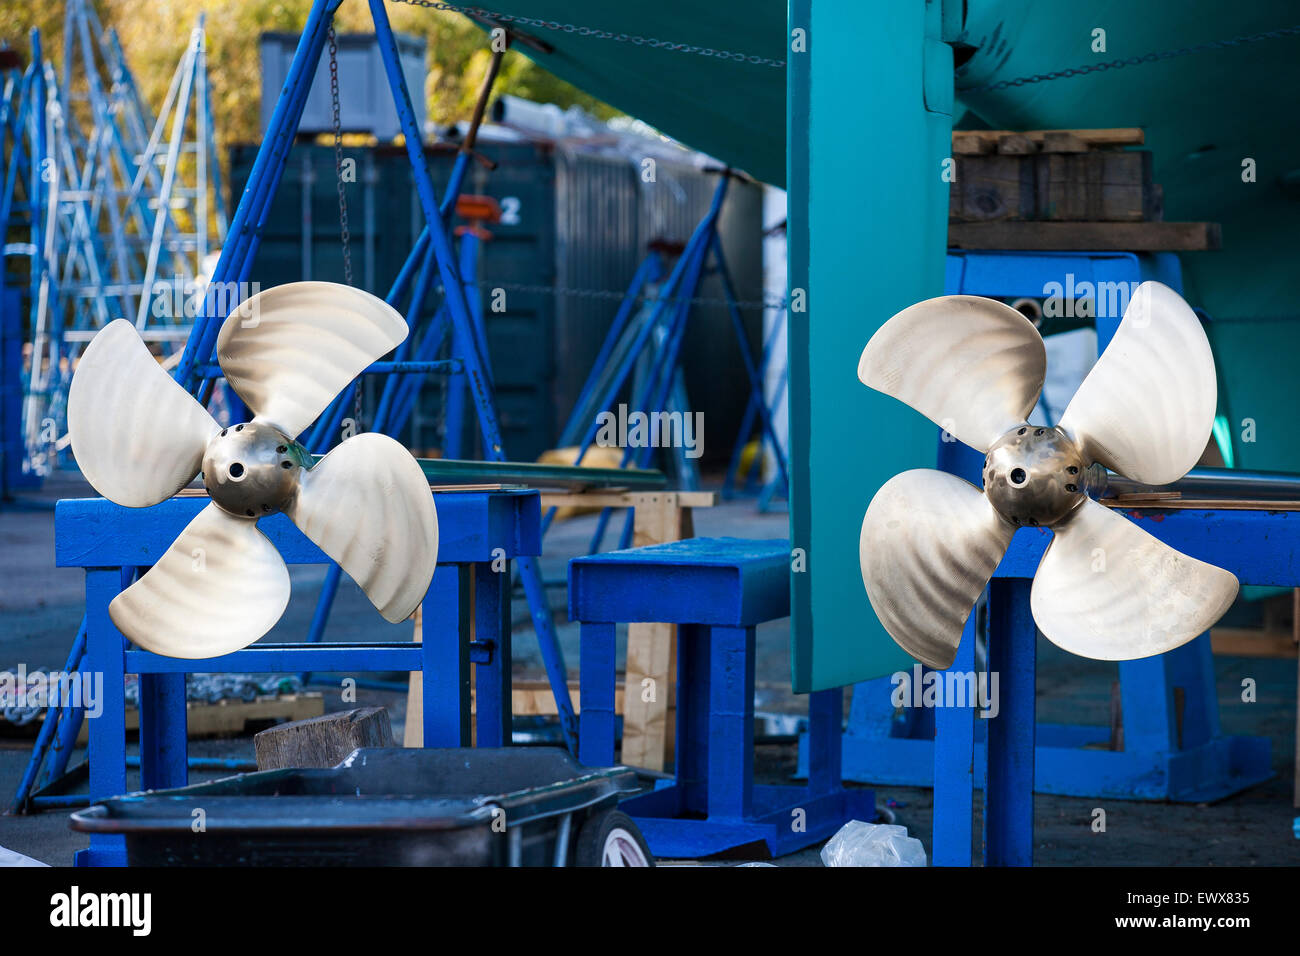 Twin shiny propellers freshly polished on a large sailing yacht out of the water at Newport Shipyard, R.I. - Stock Image